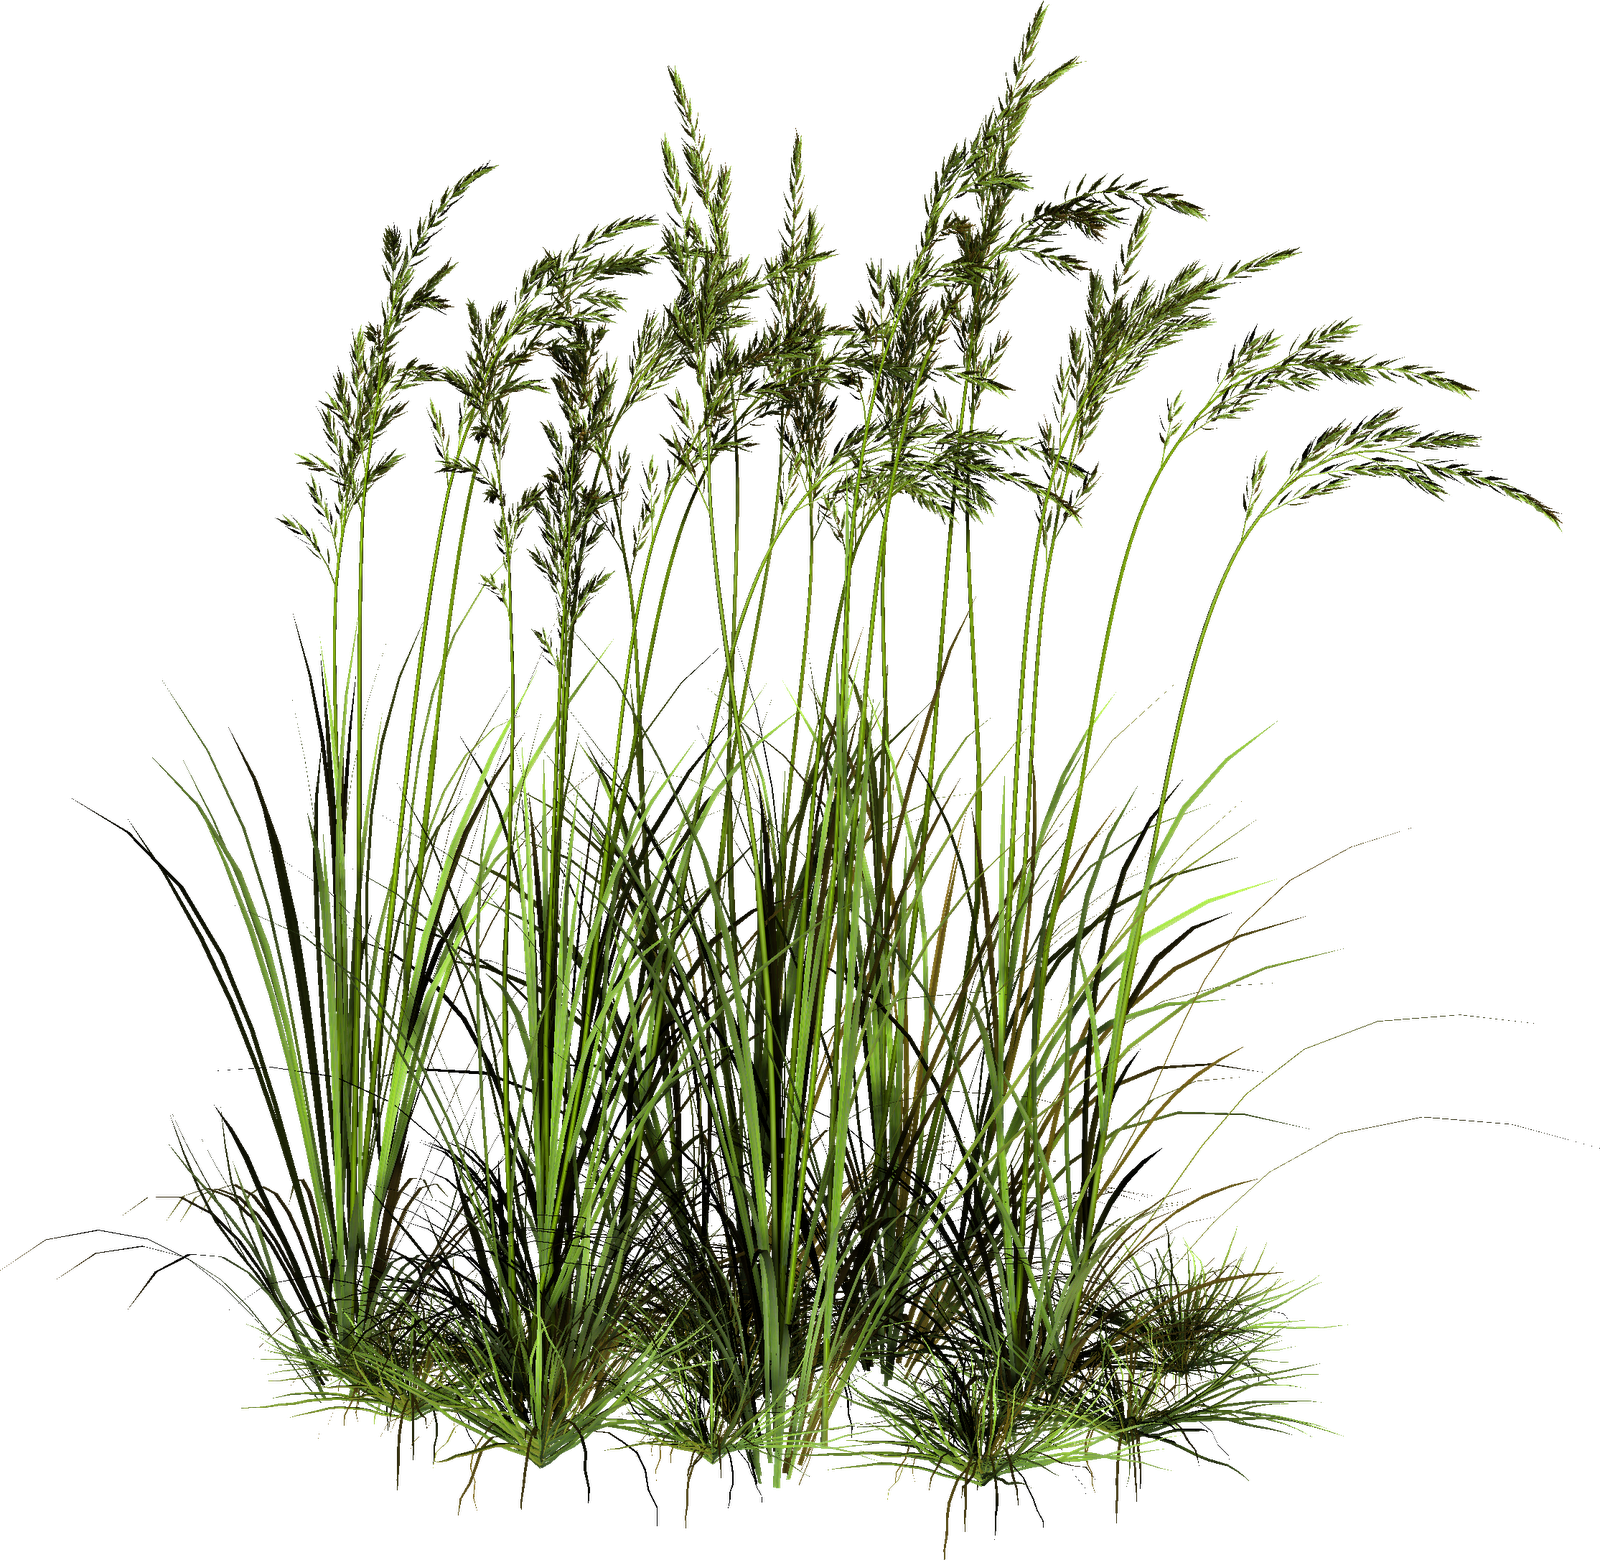 Tall Grass Png Pic